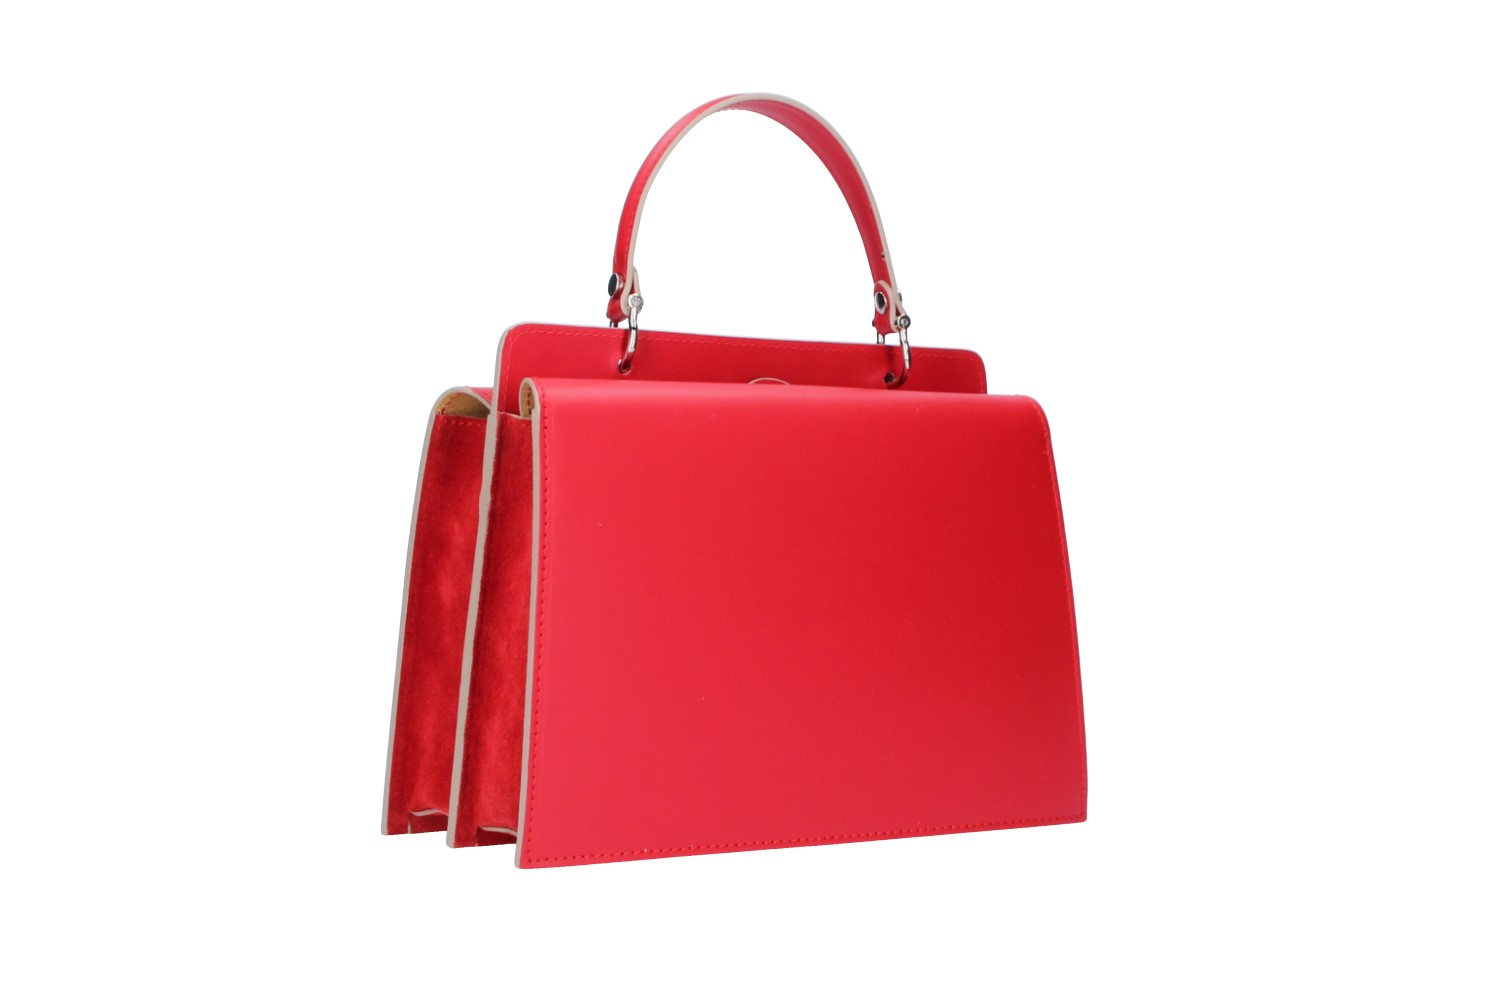 Whole Leather Bags Online